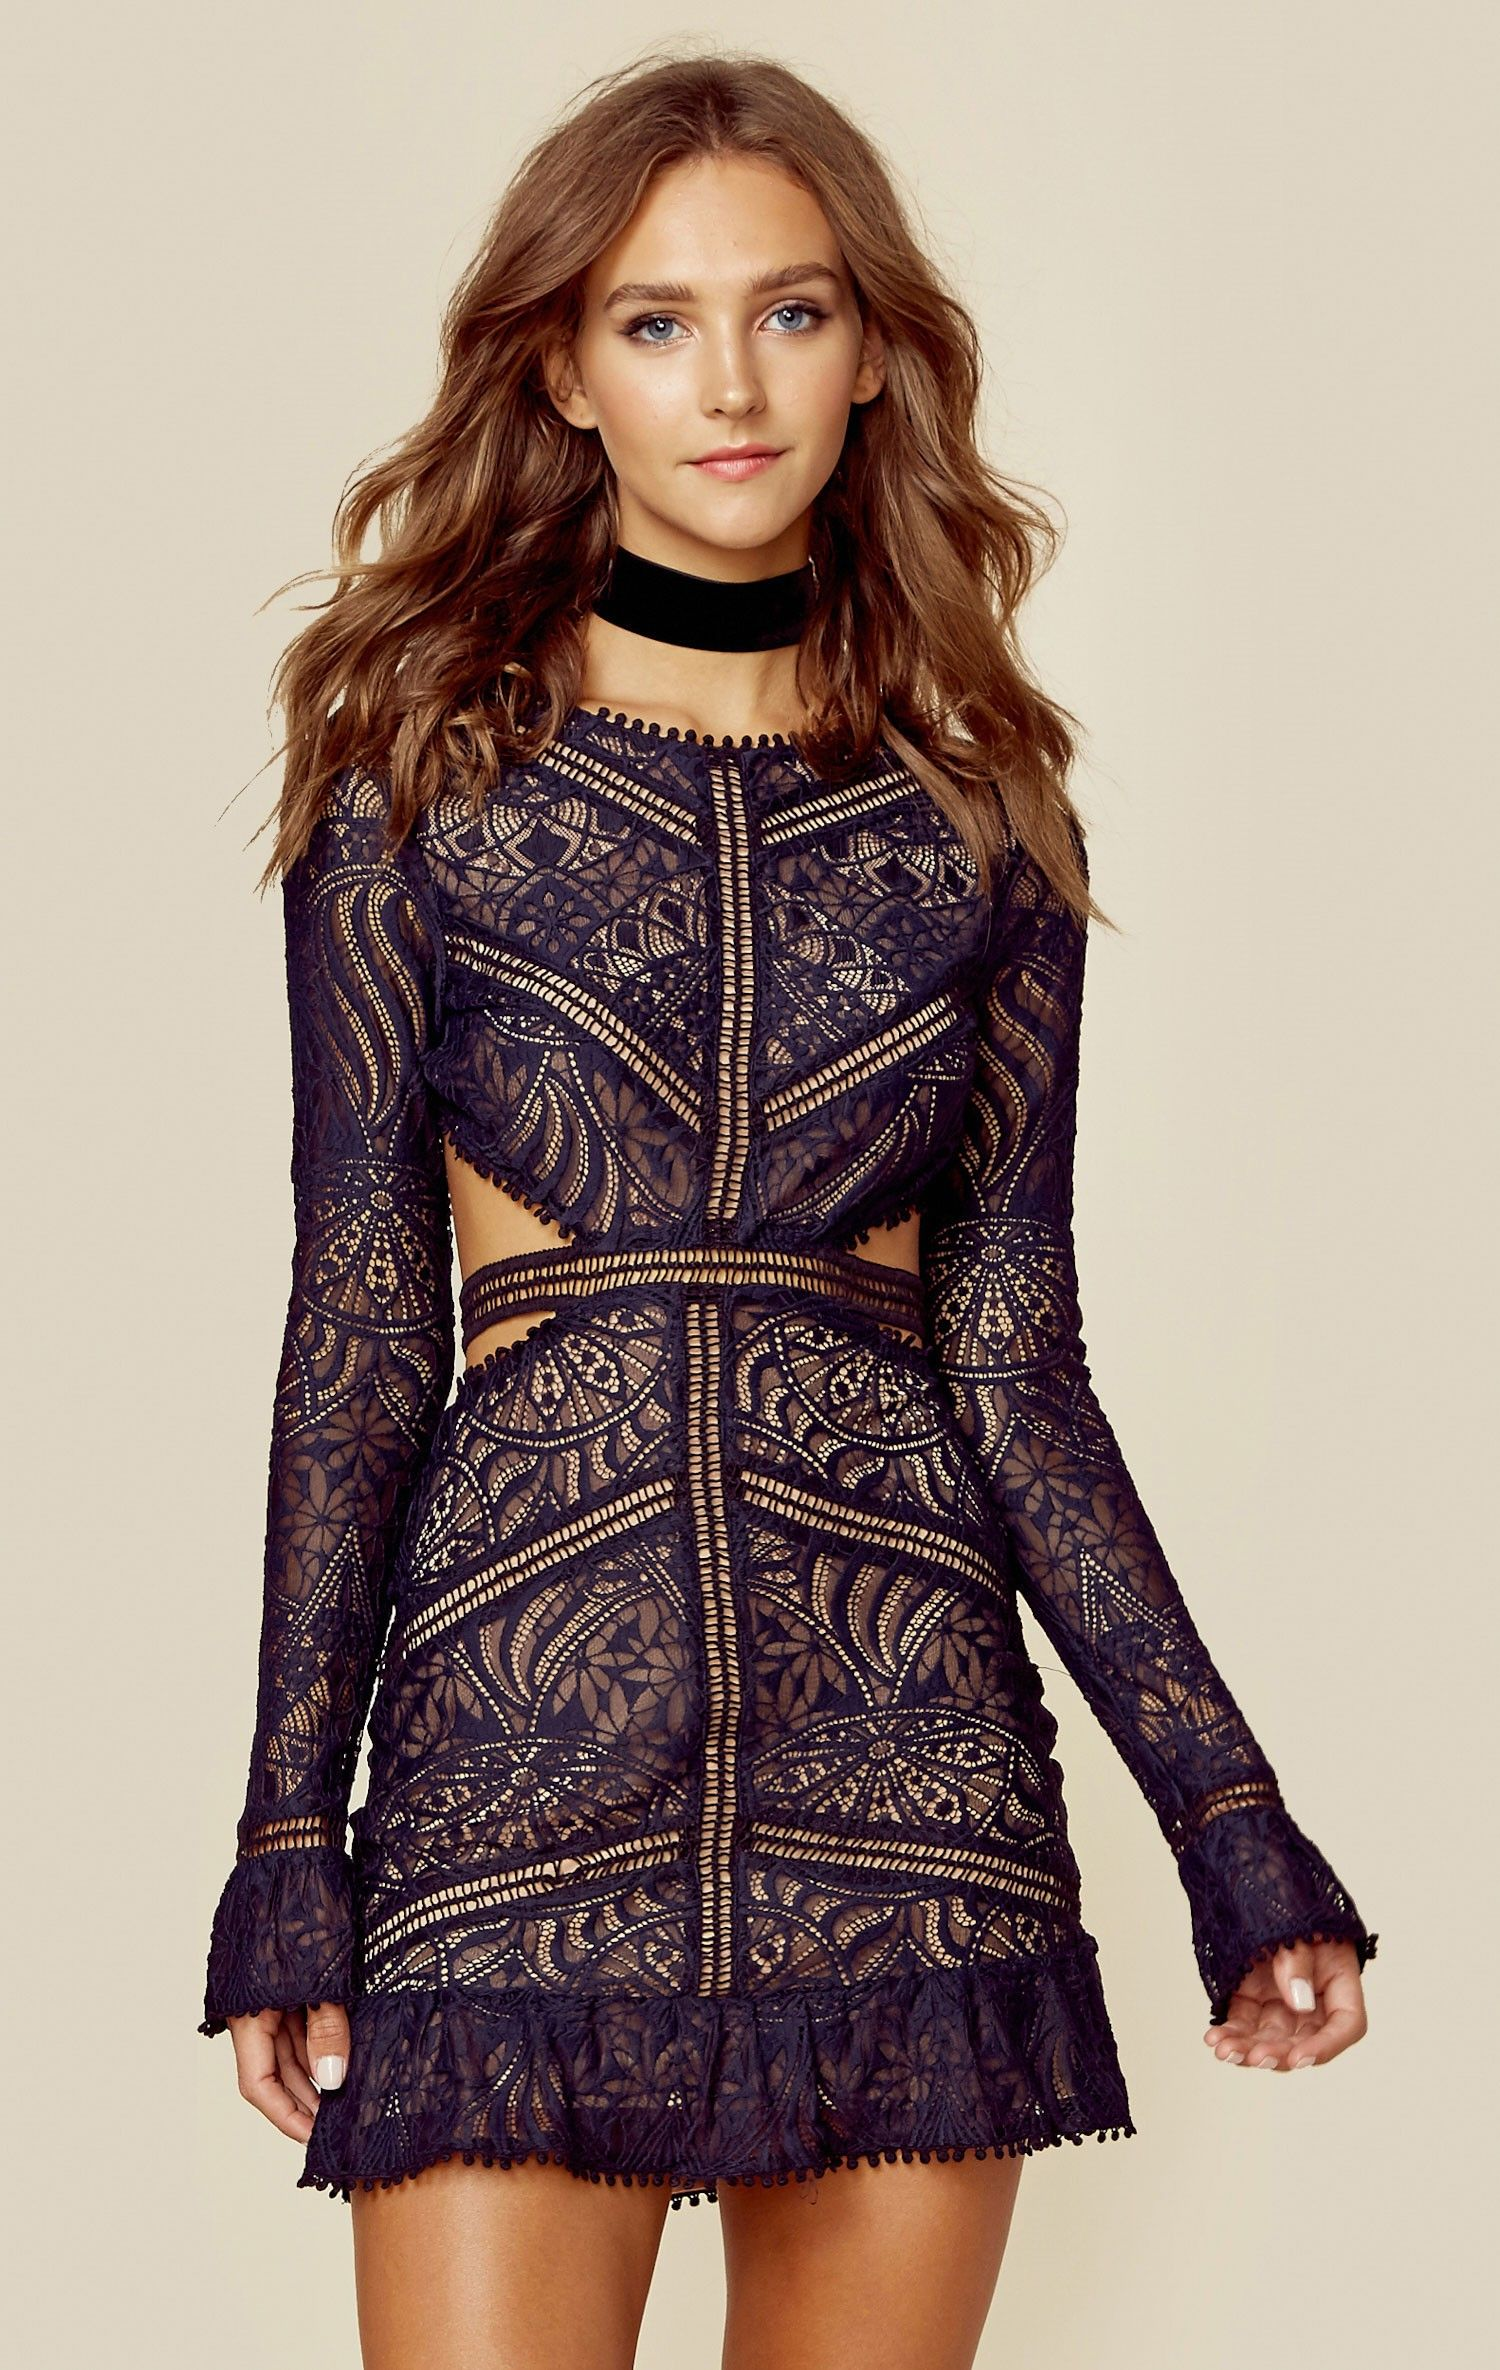 Emerie cutout dress embroidered lace delicate and bald hairstyles